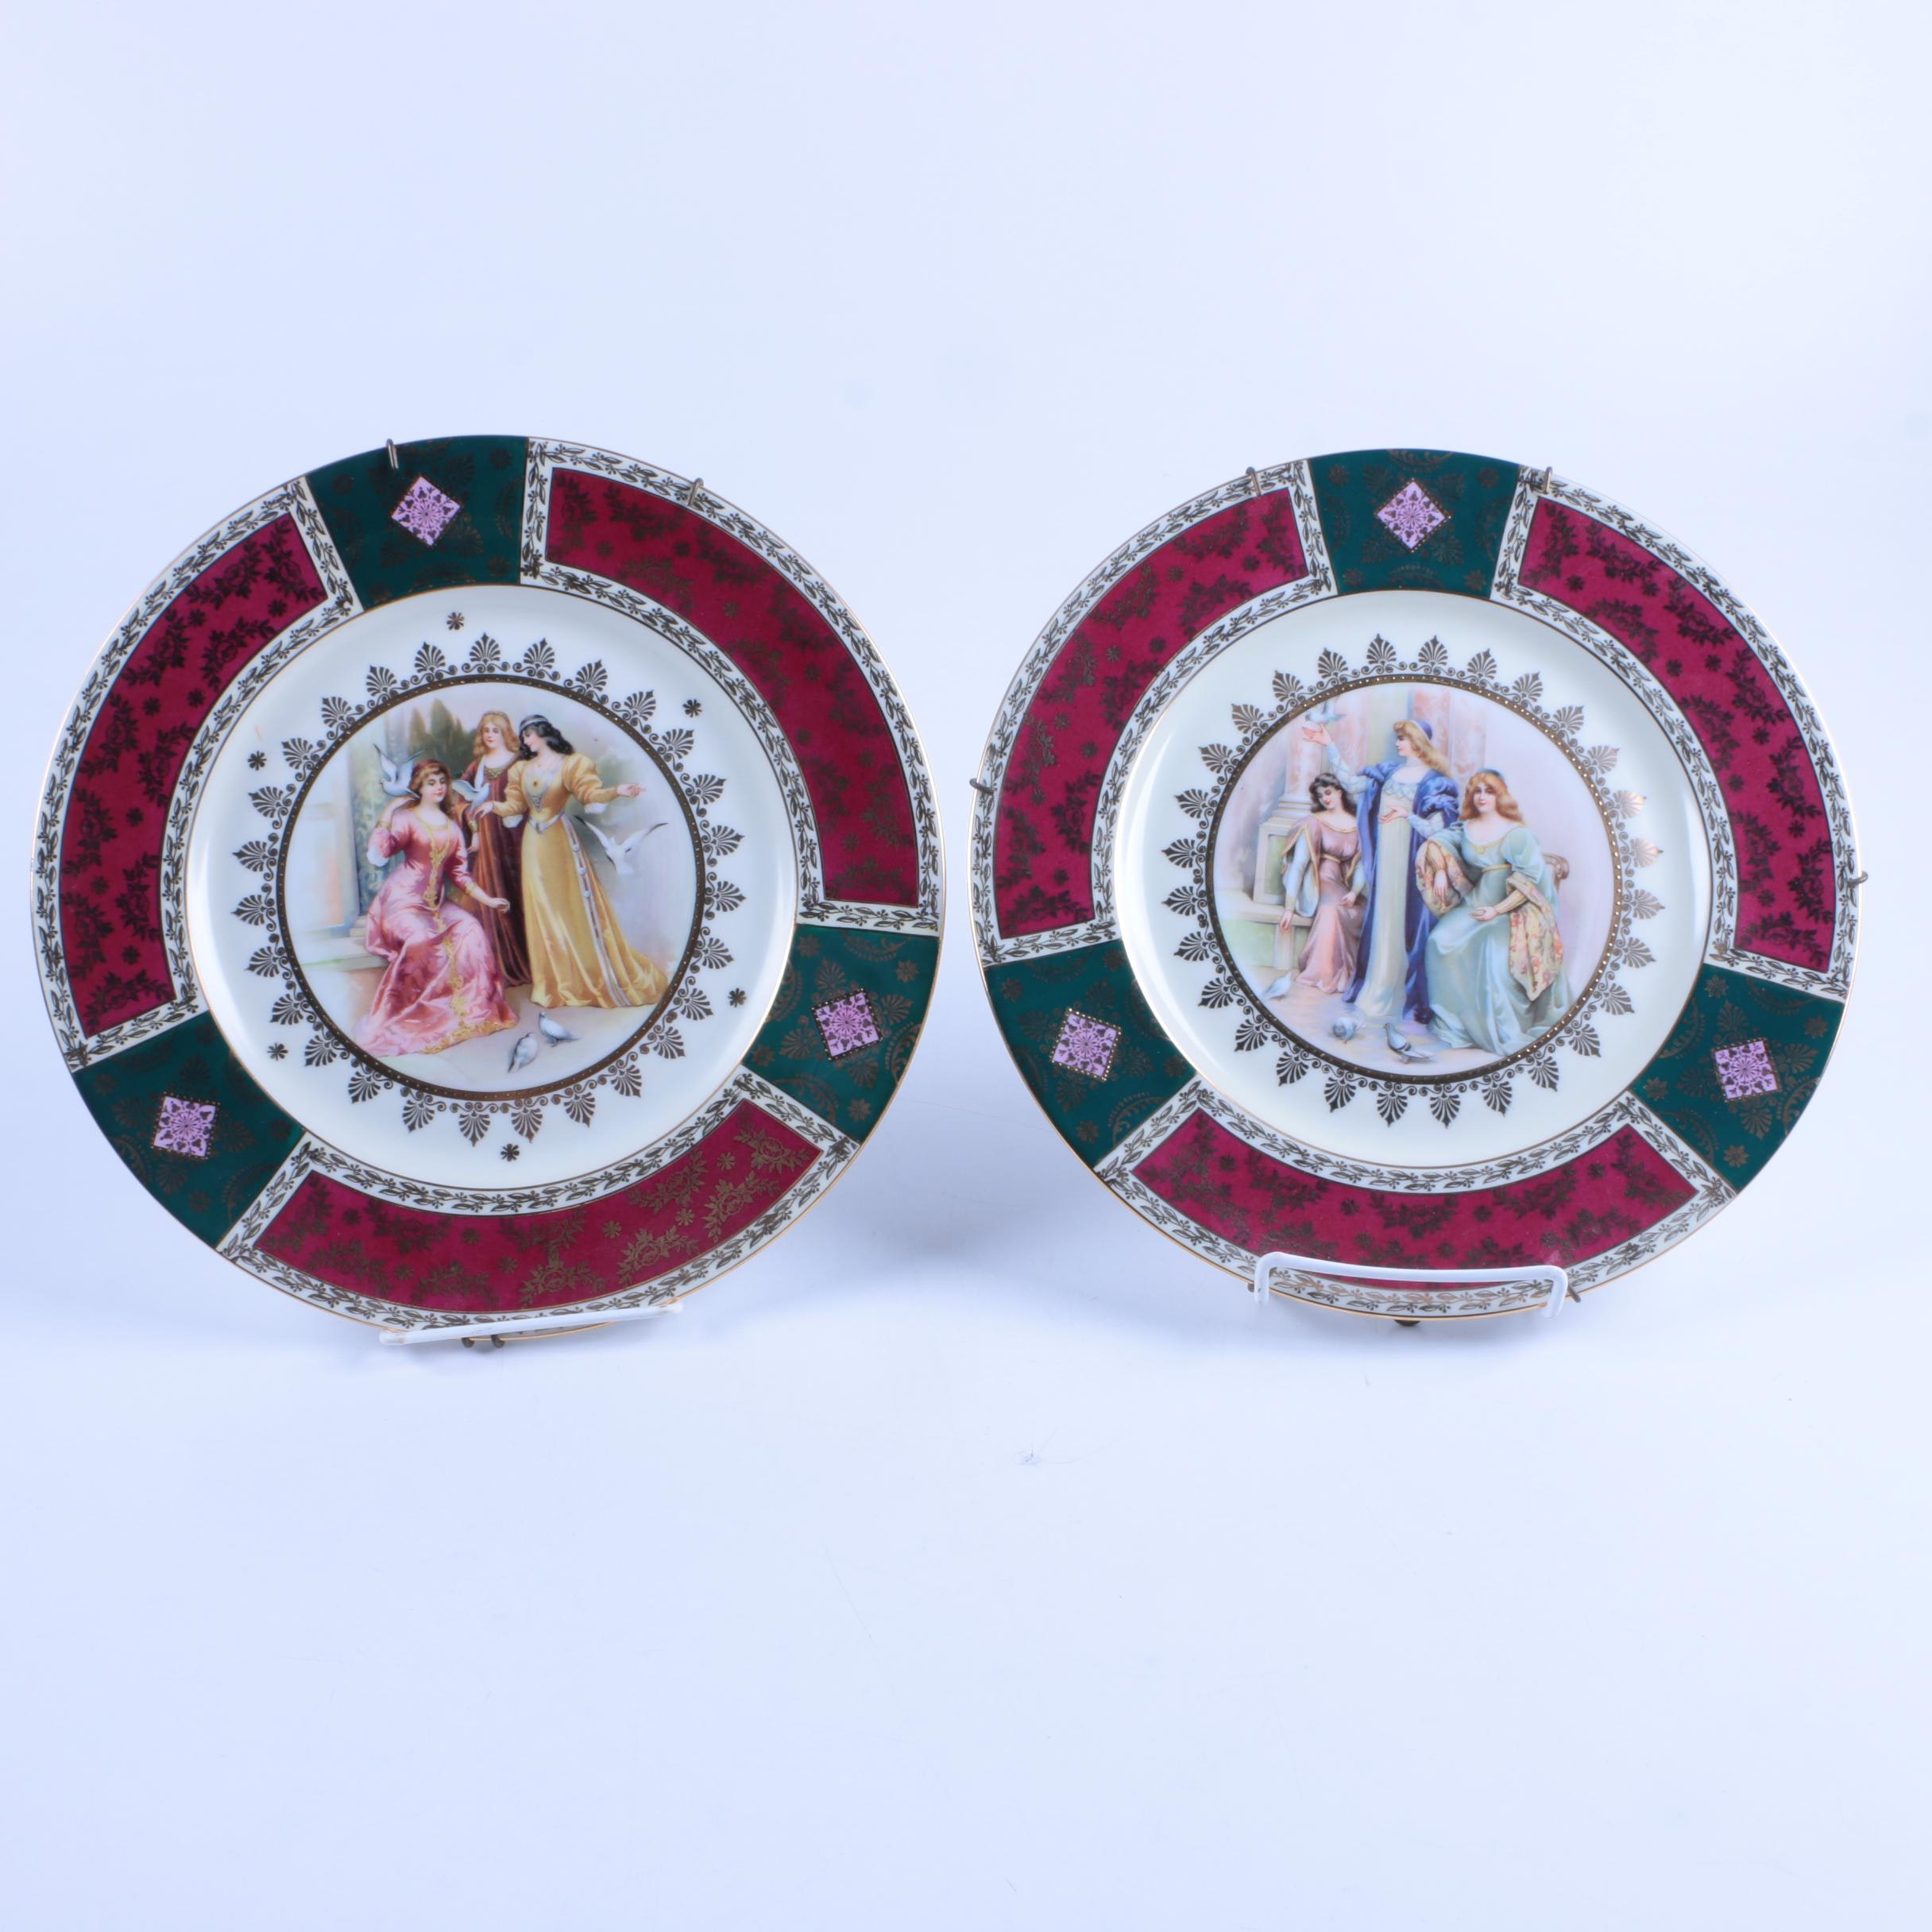 Vintage Royal Vienna Style Decorative Plates